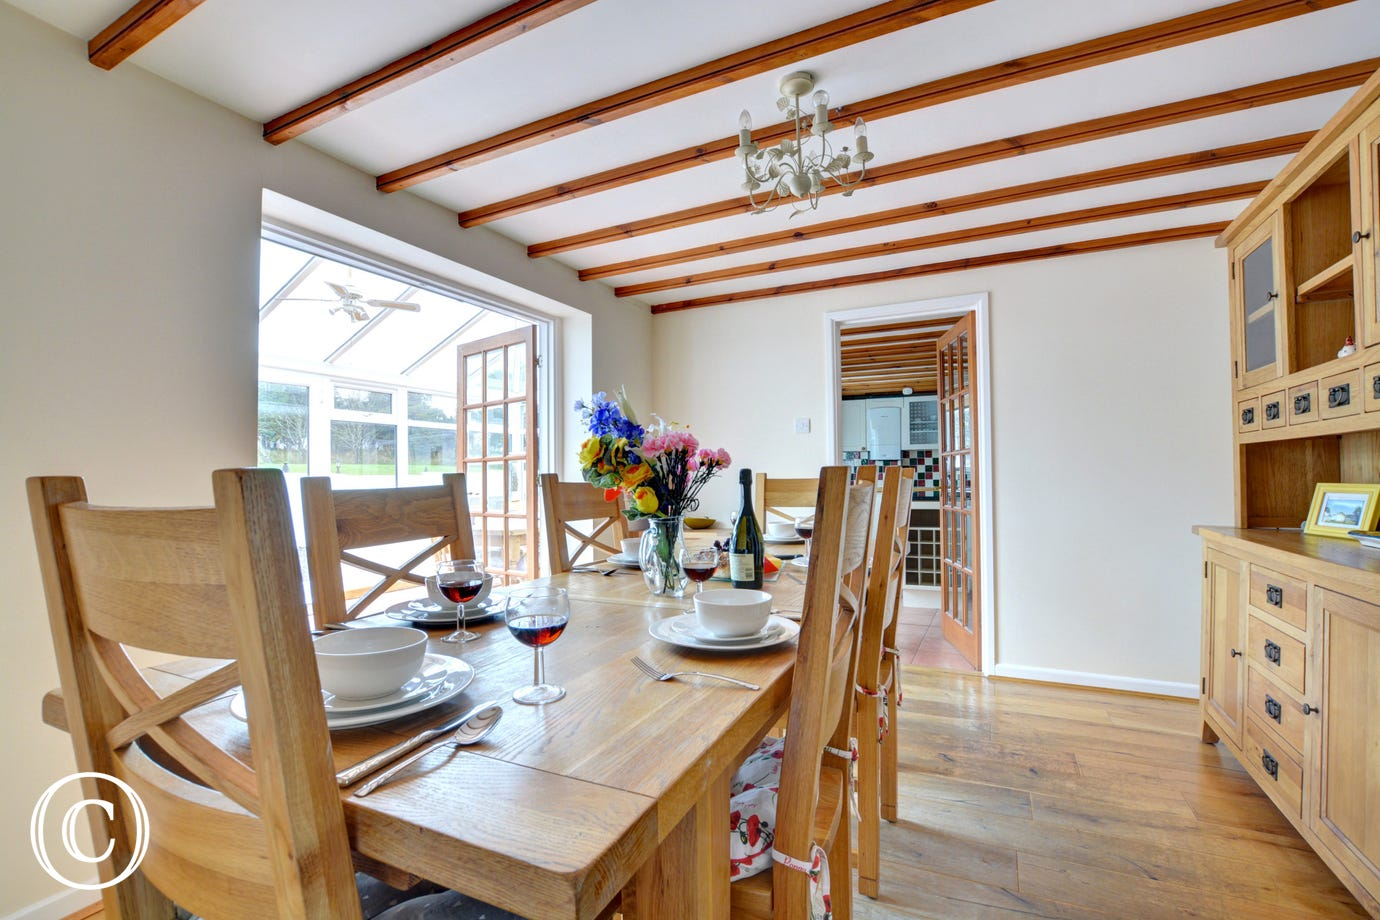 Dining room with french doors leading to conservatory